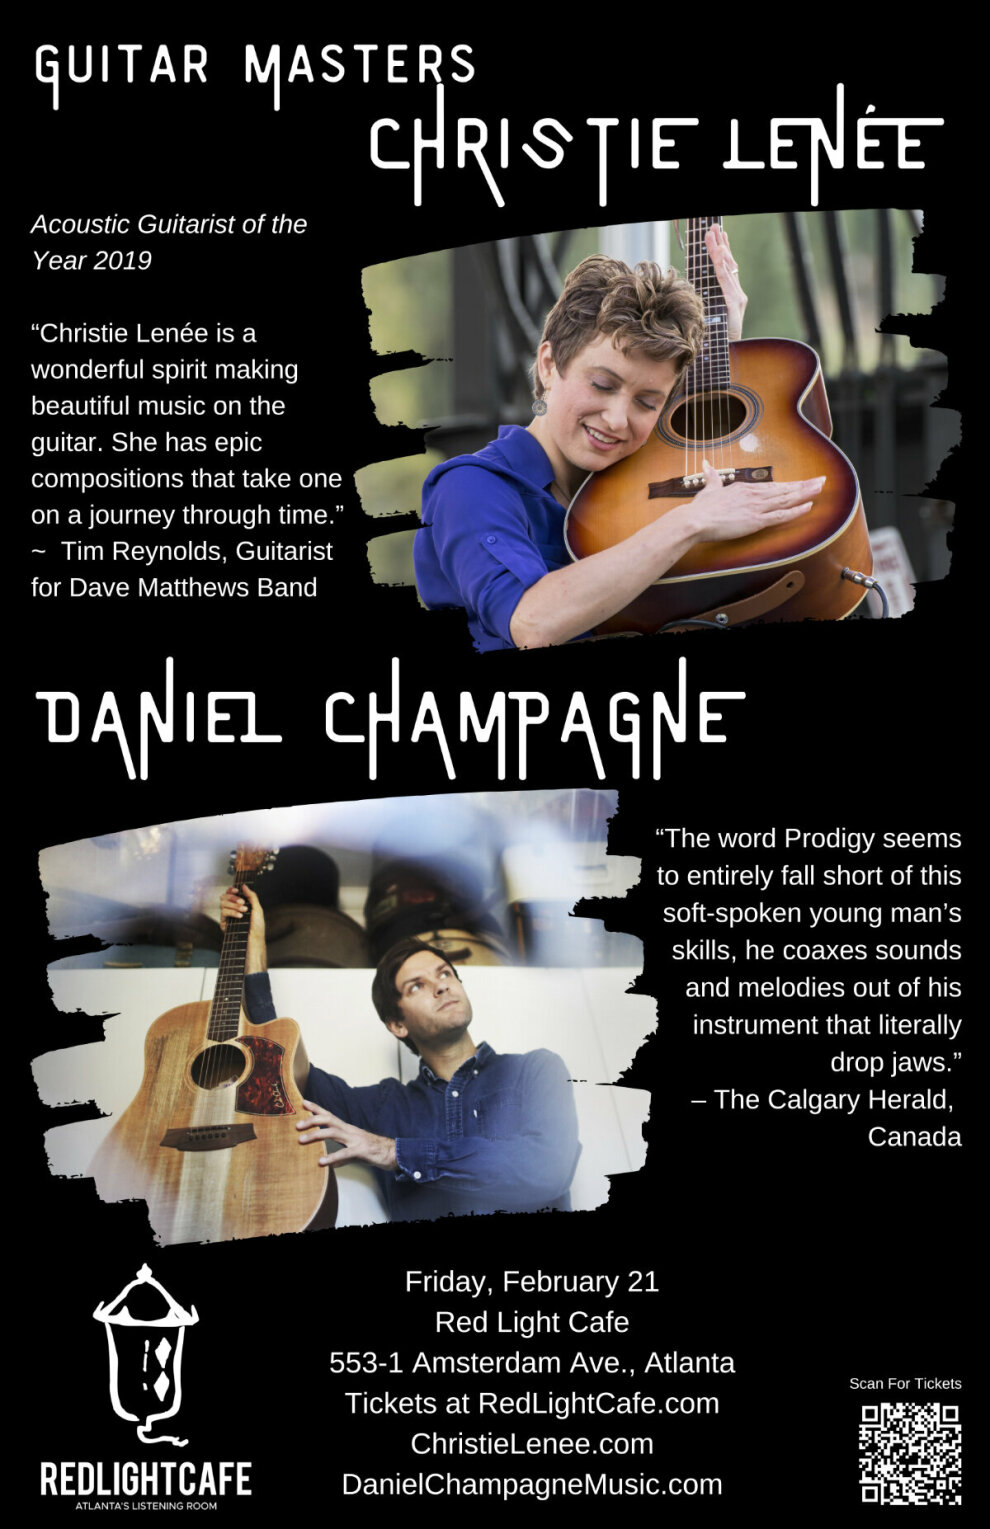 Guitar Masters Daniel Champagne Christie Lenee At Red Light Cafe Atlanta Ga Feb 21 2020 Poster 1200